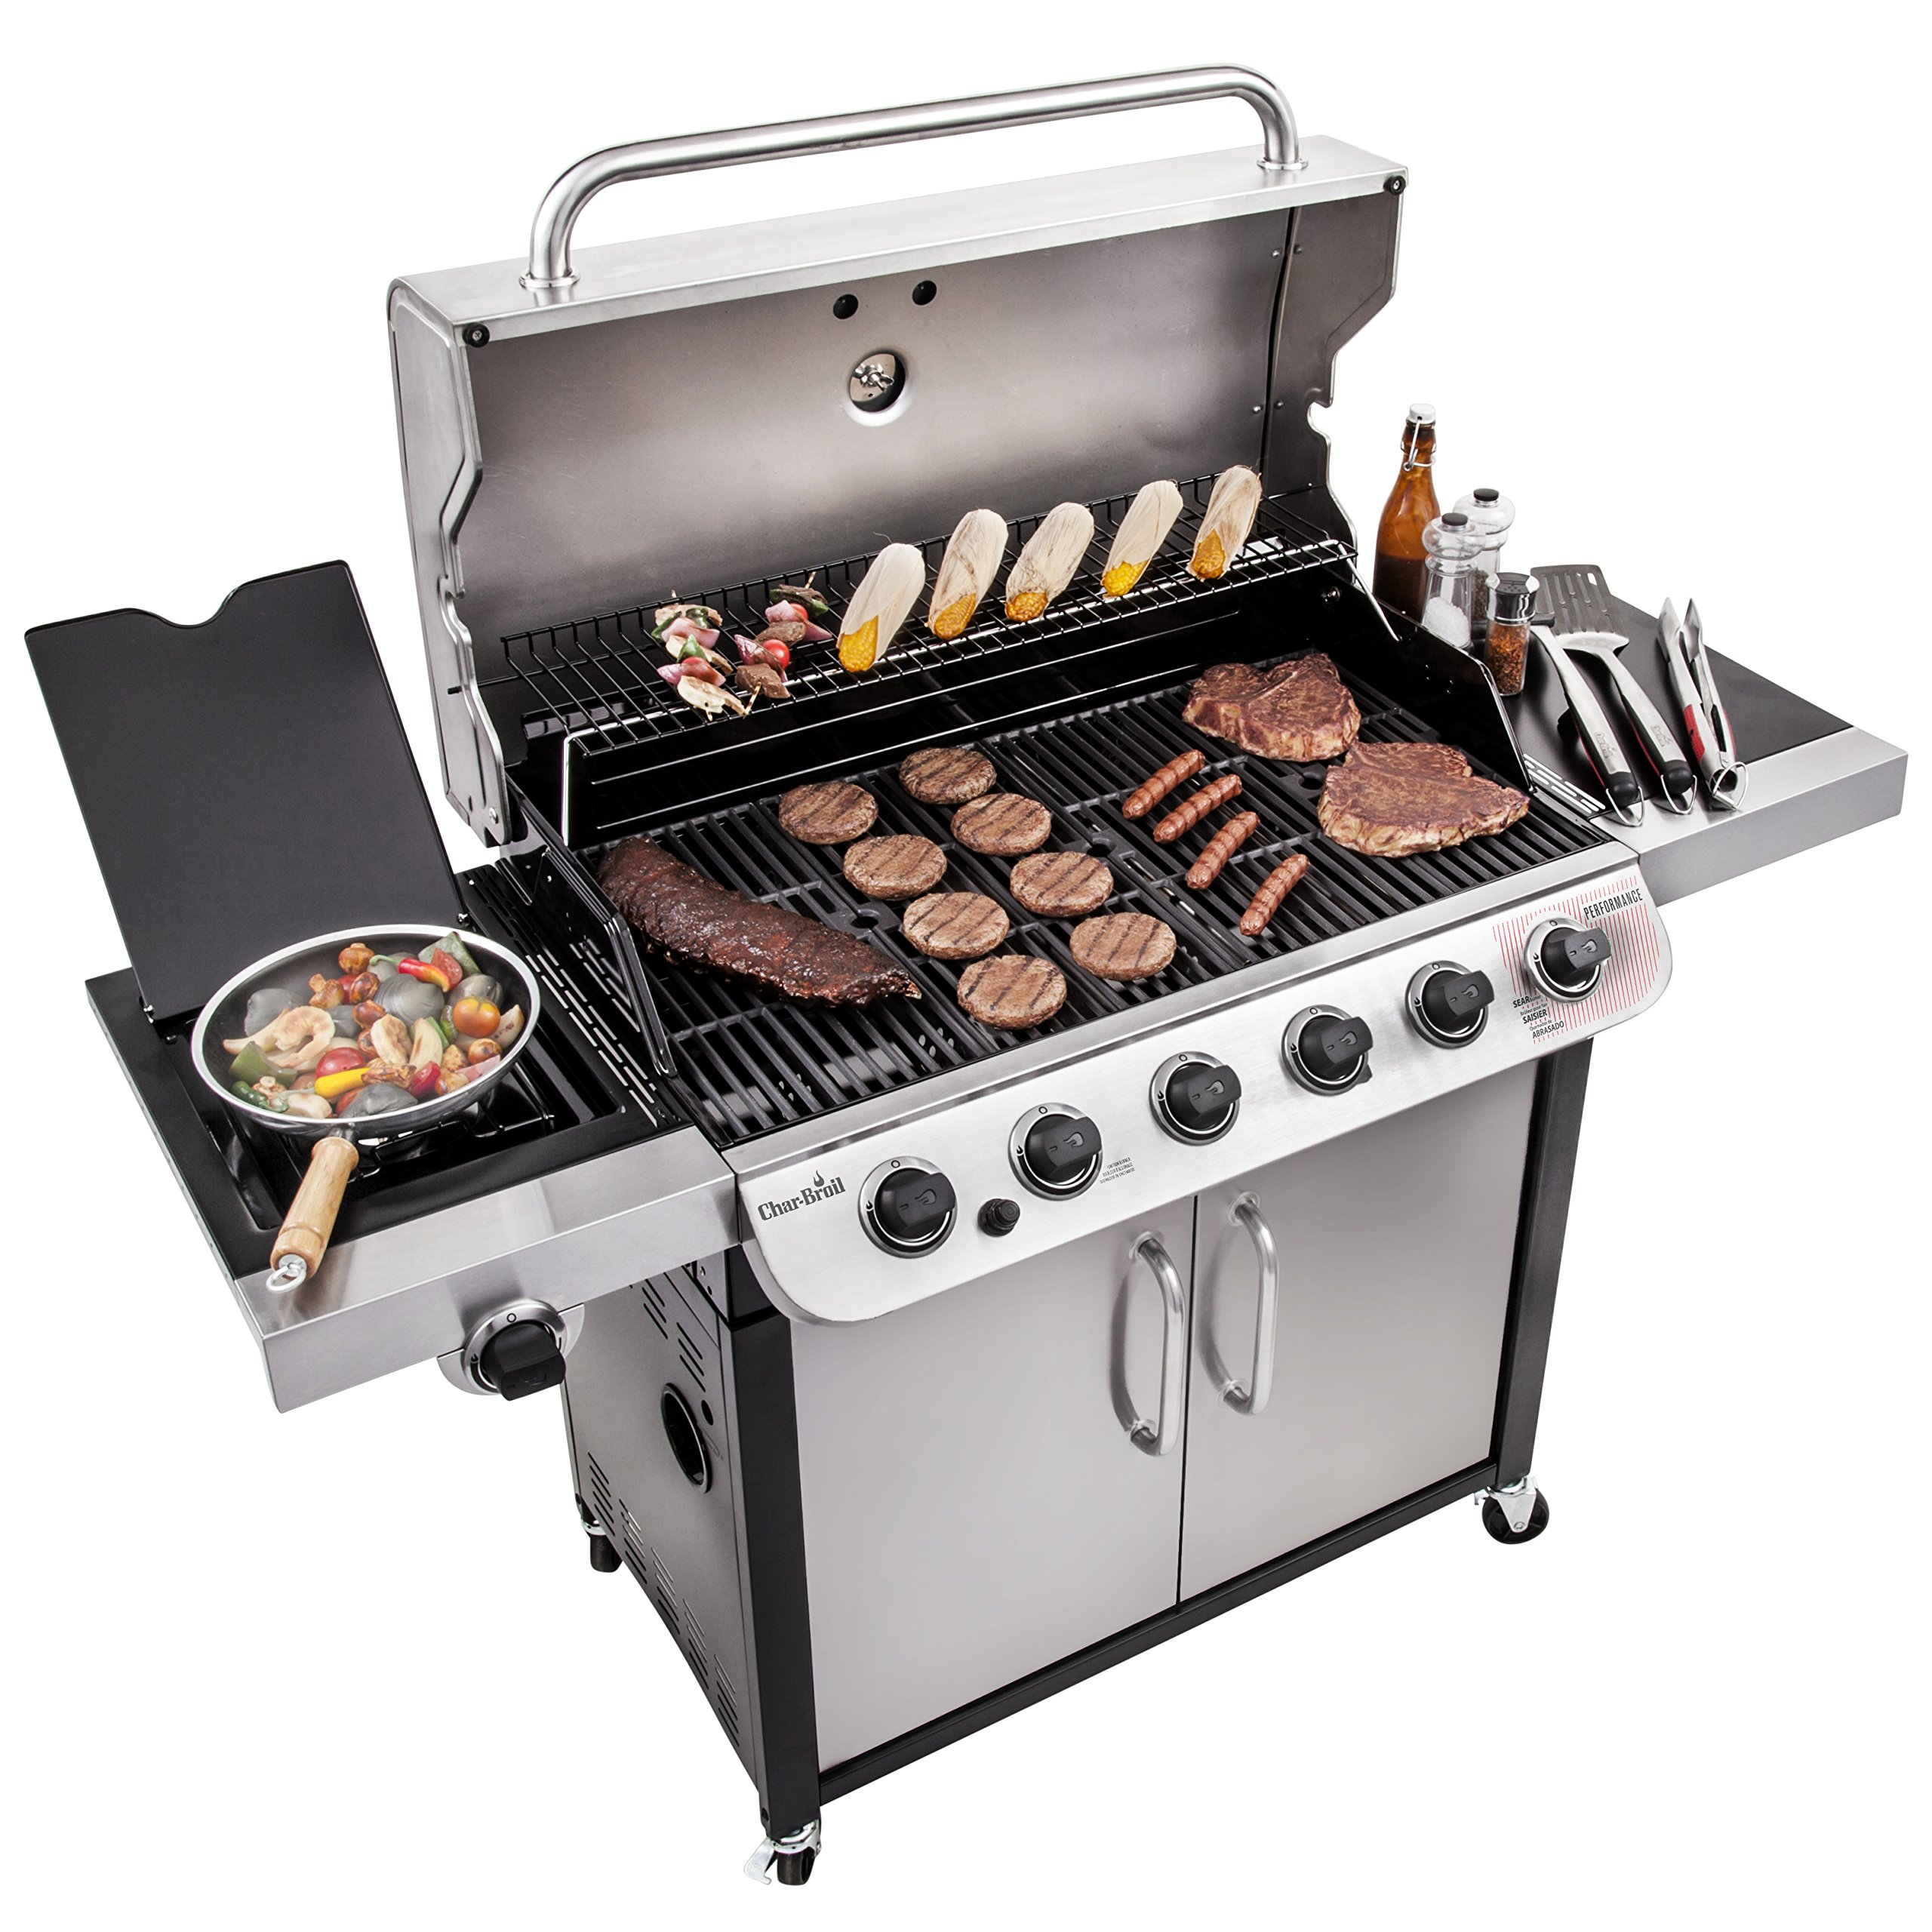 Char-Broil Performance 650 6-Burner Cabinet Gas Grill by Char-Broil (Image #5)